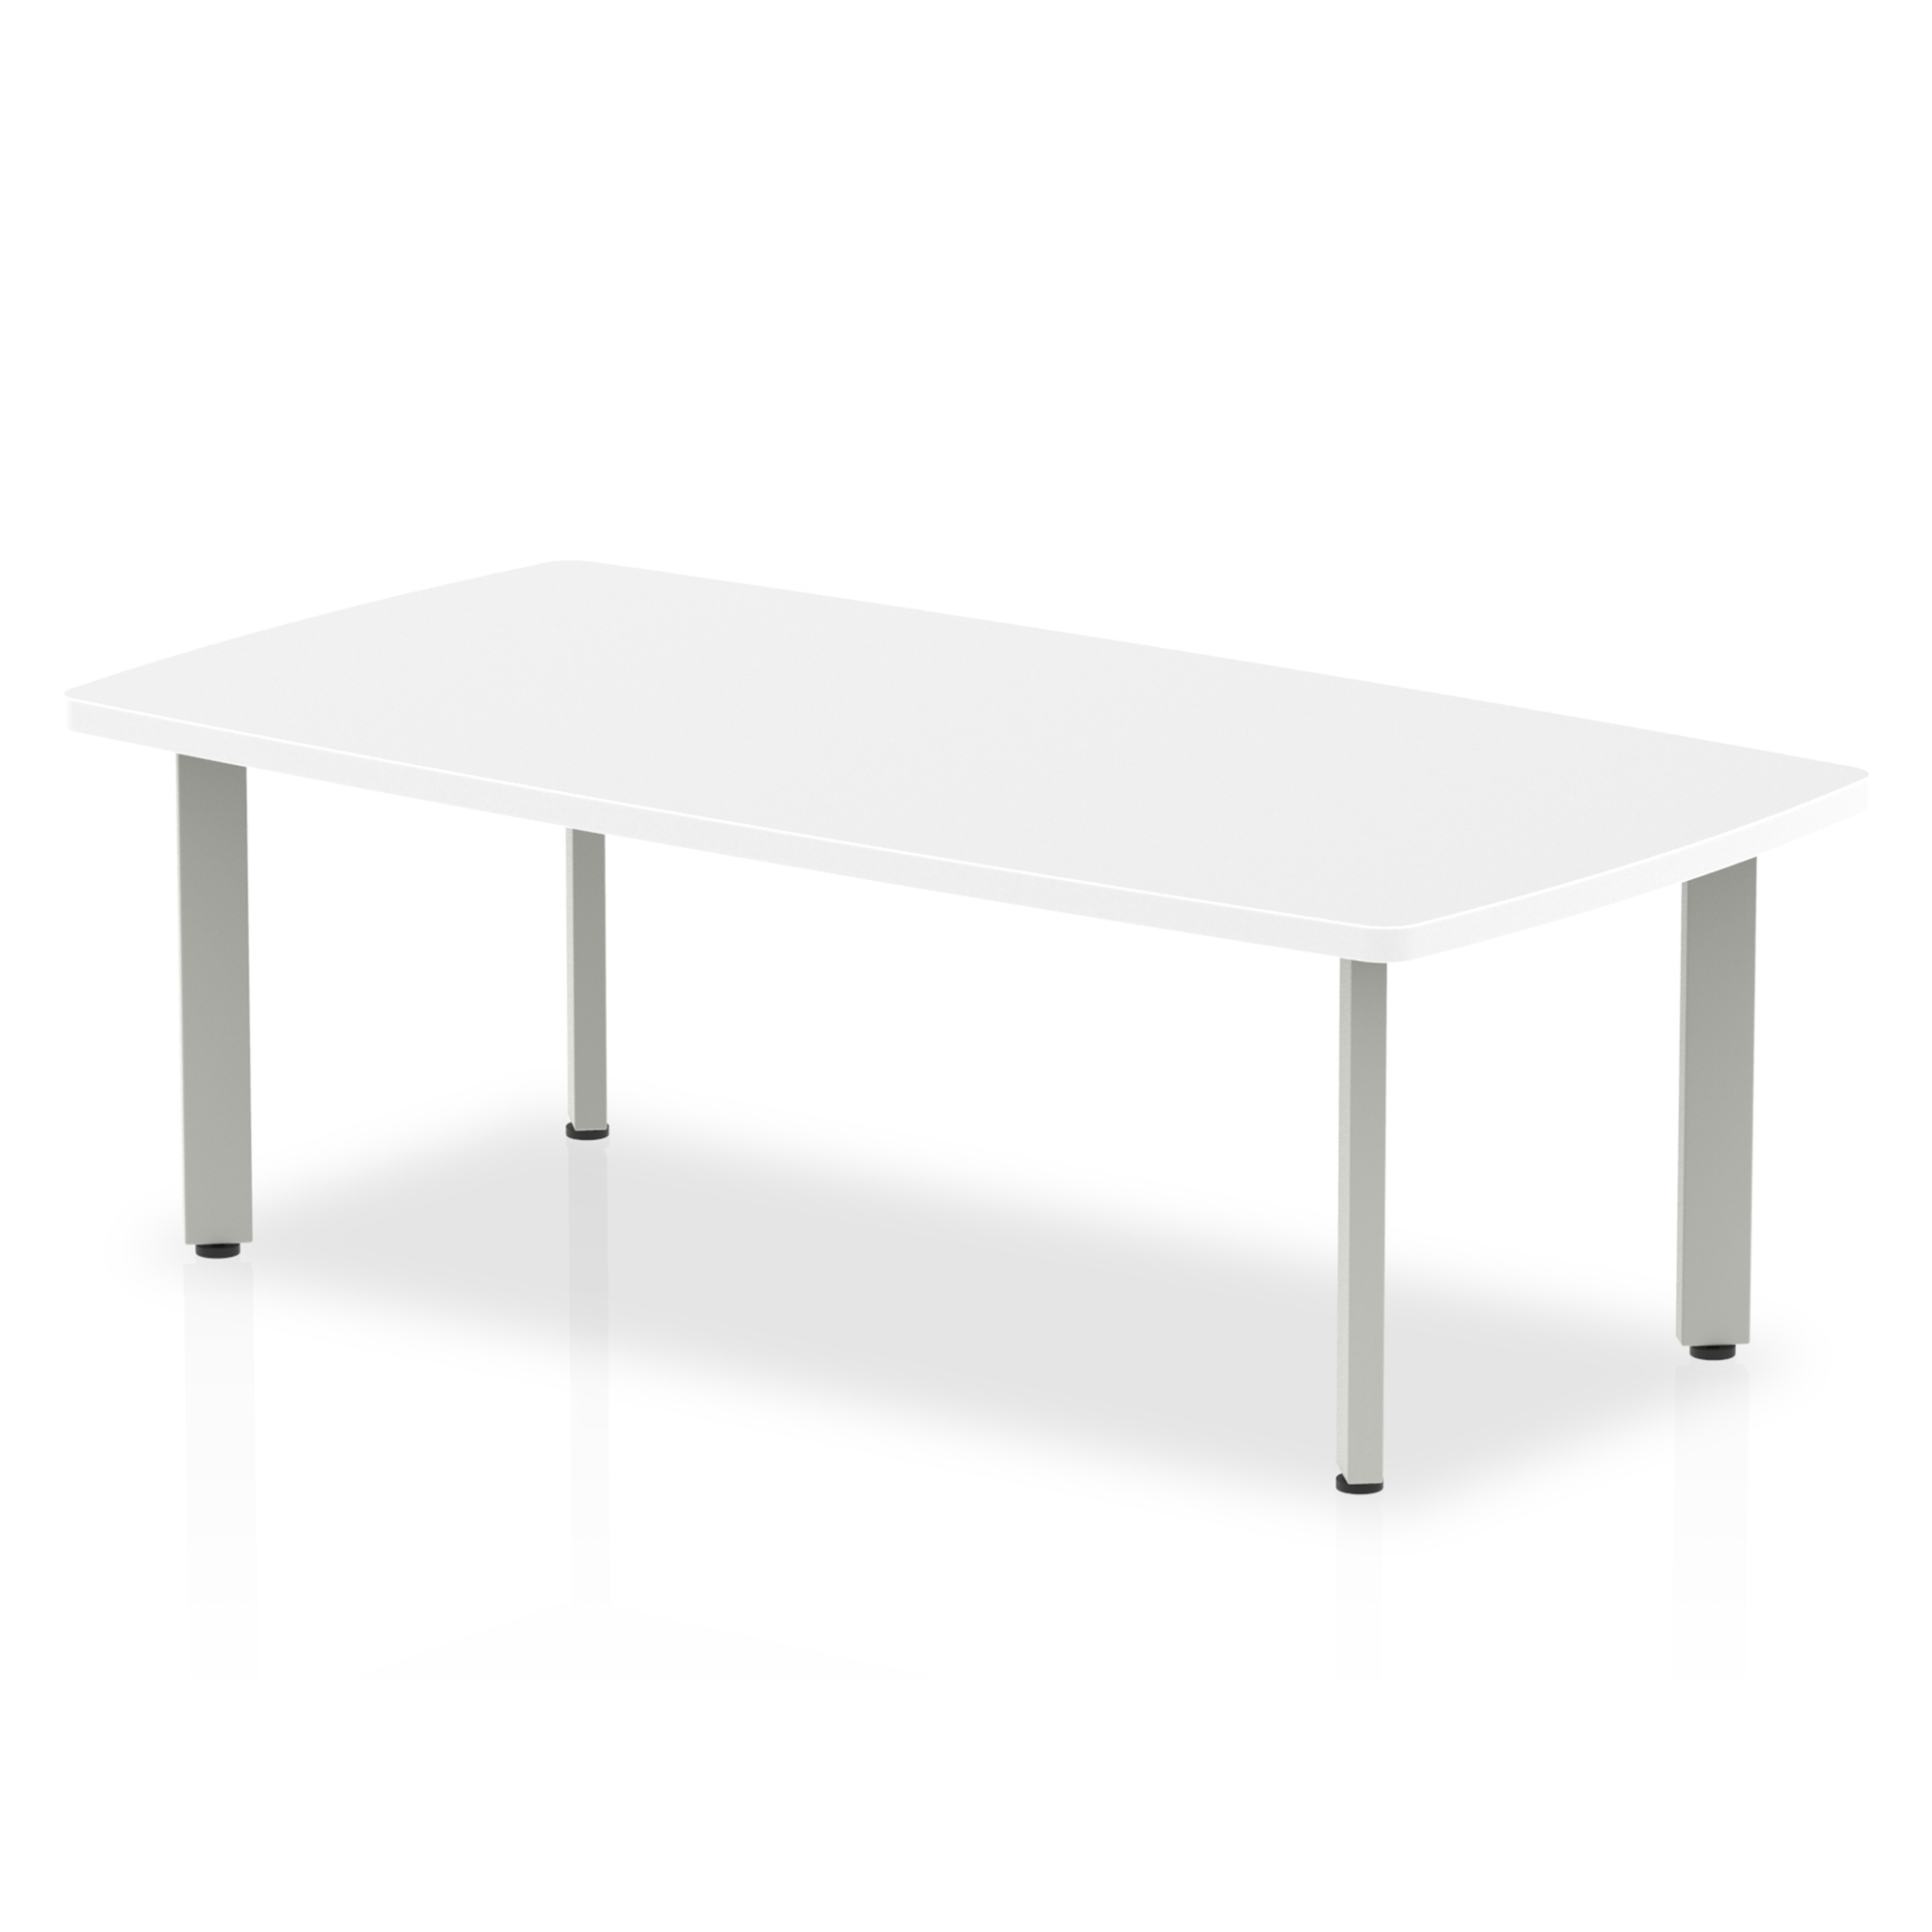 Trexus Coffee Table 1200x600x450mm White Ref I000202